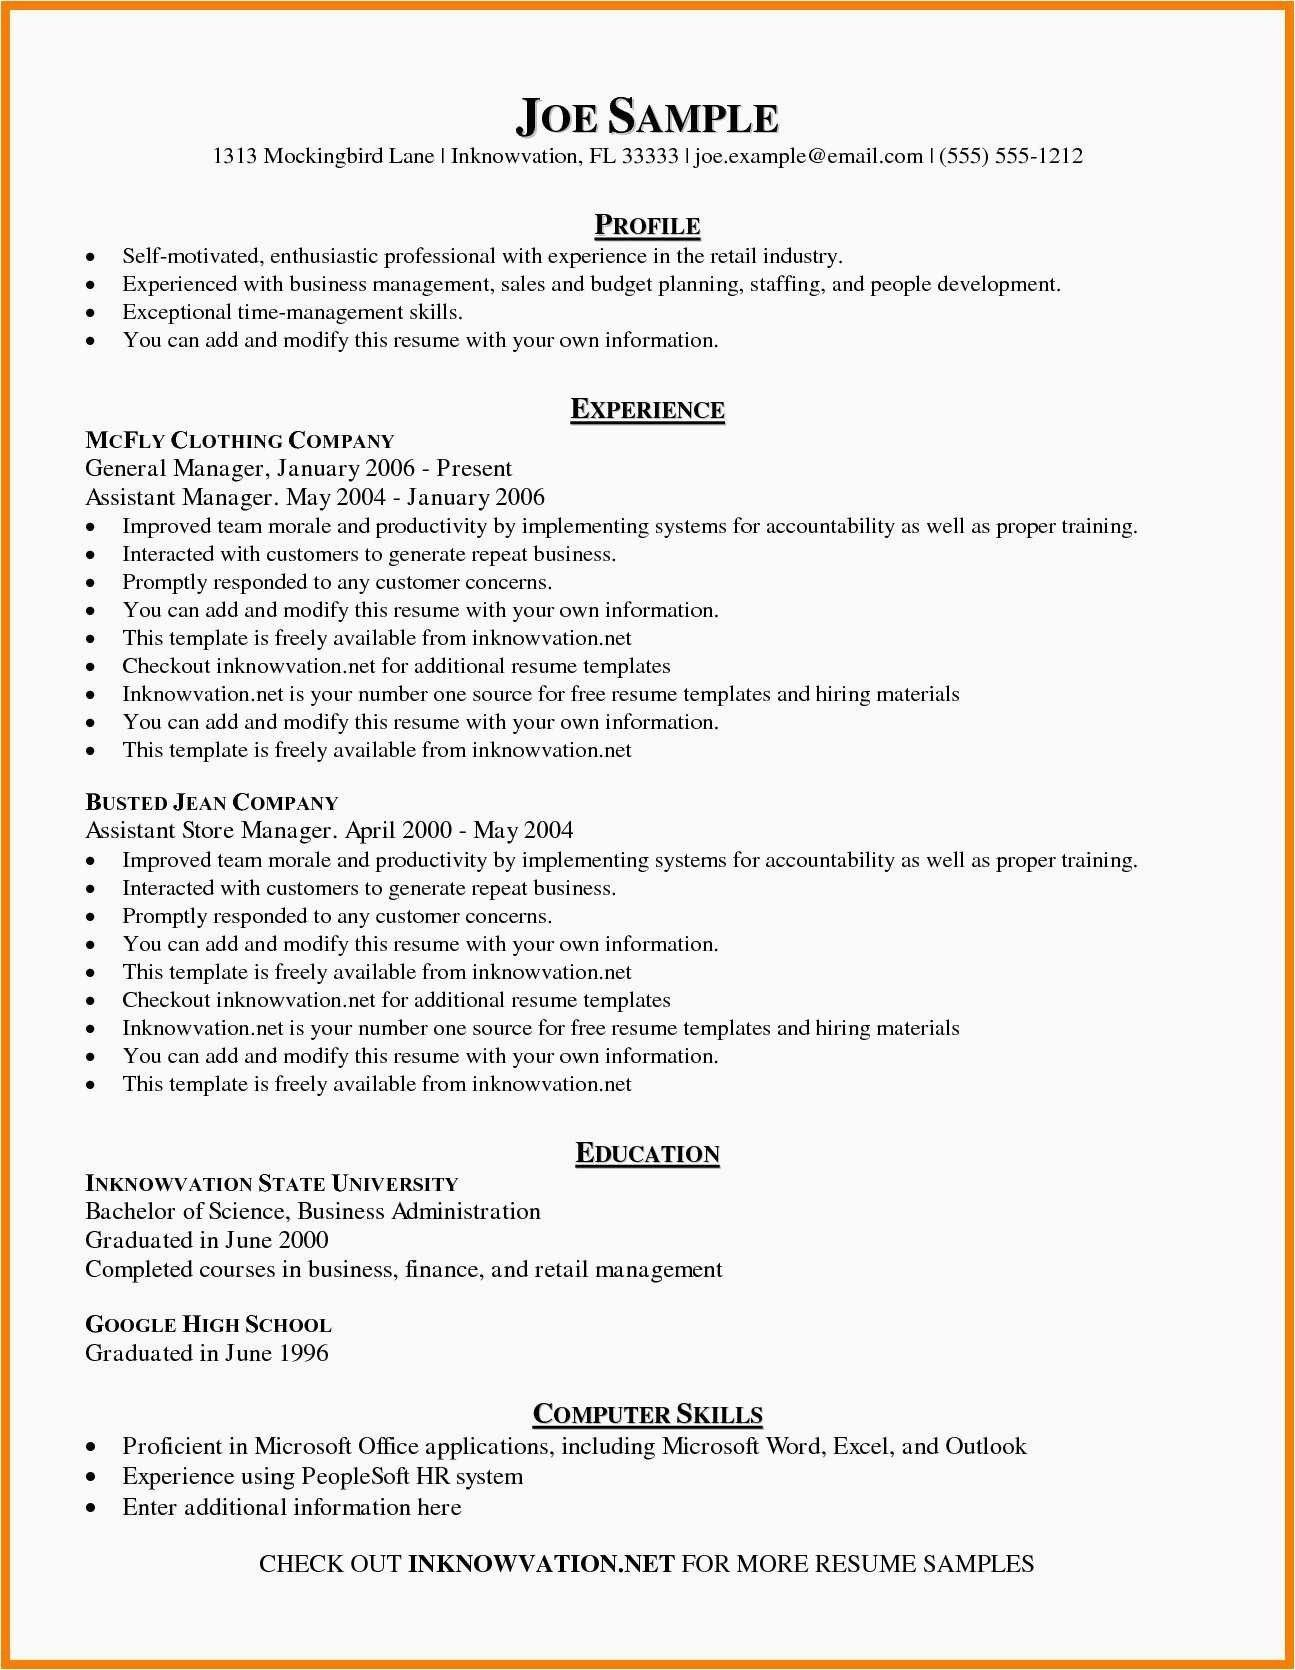 how to mention basic computer skills in resume  best